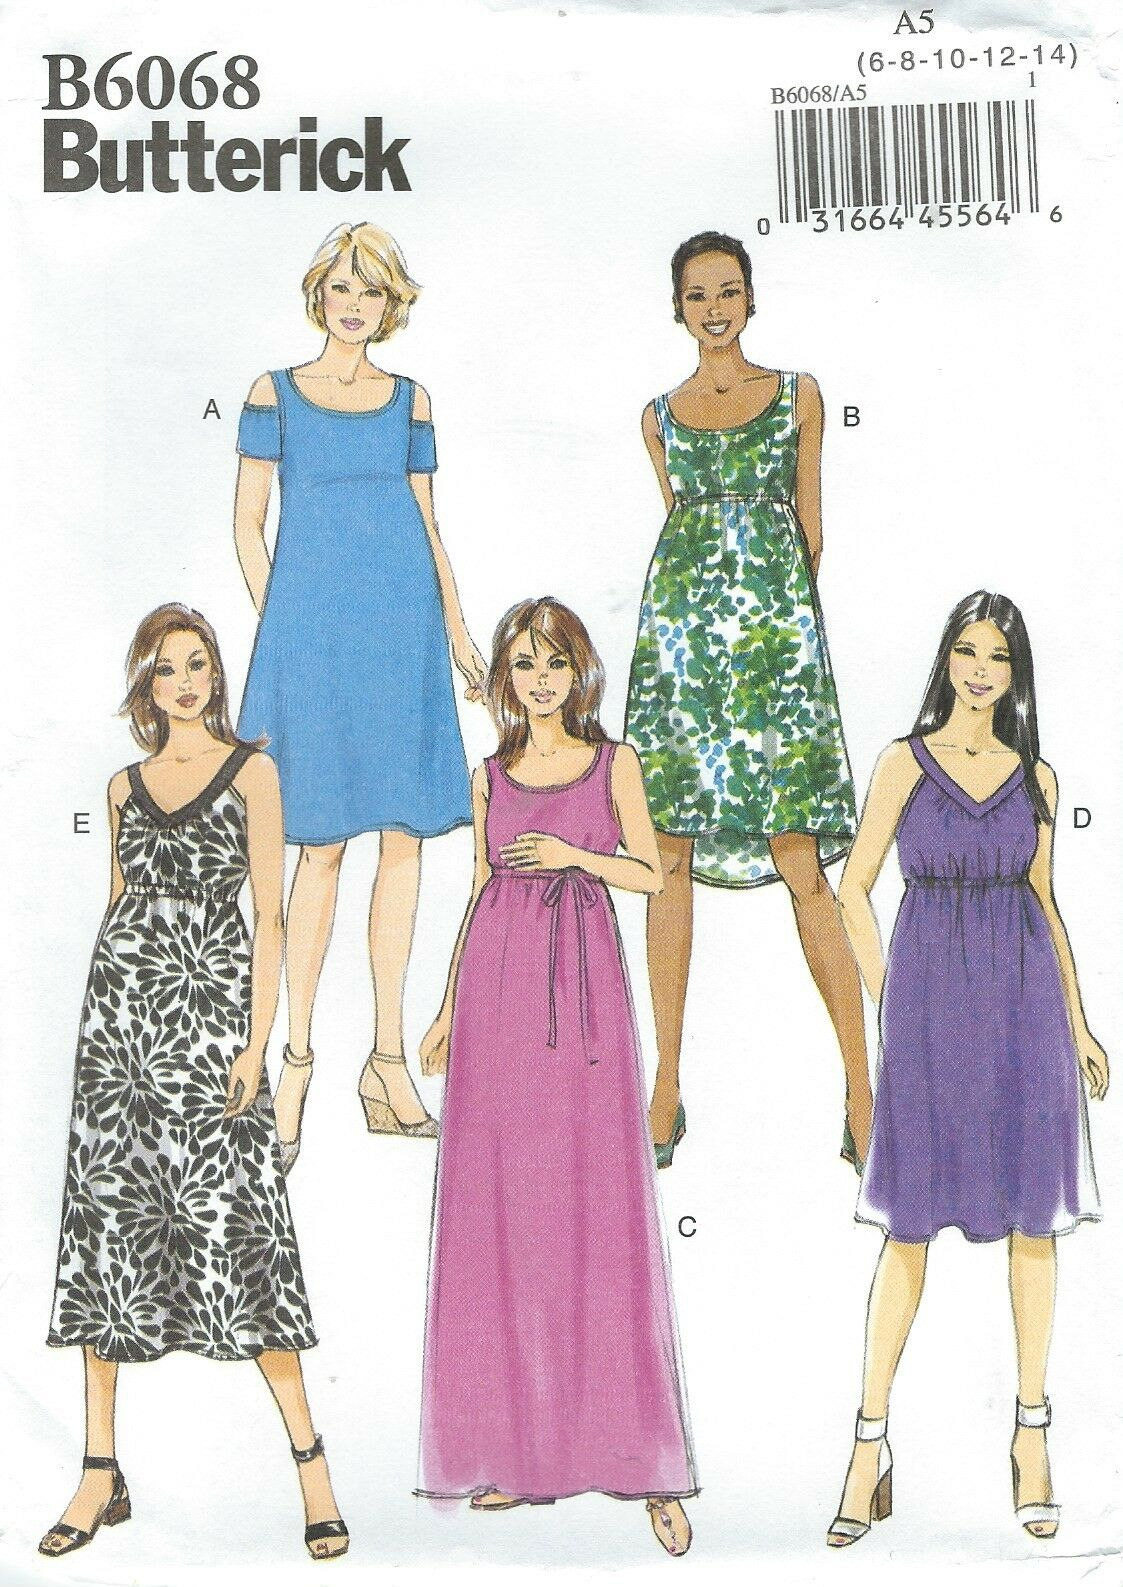 Misses maternity dress butterick pattern 6068 size 6 14 ebay picture 1 of 2 ombrellifo Image collections